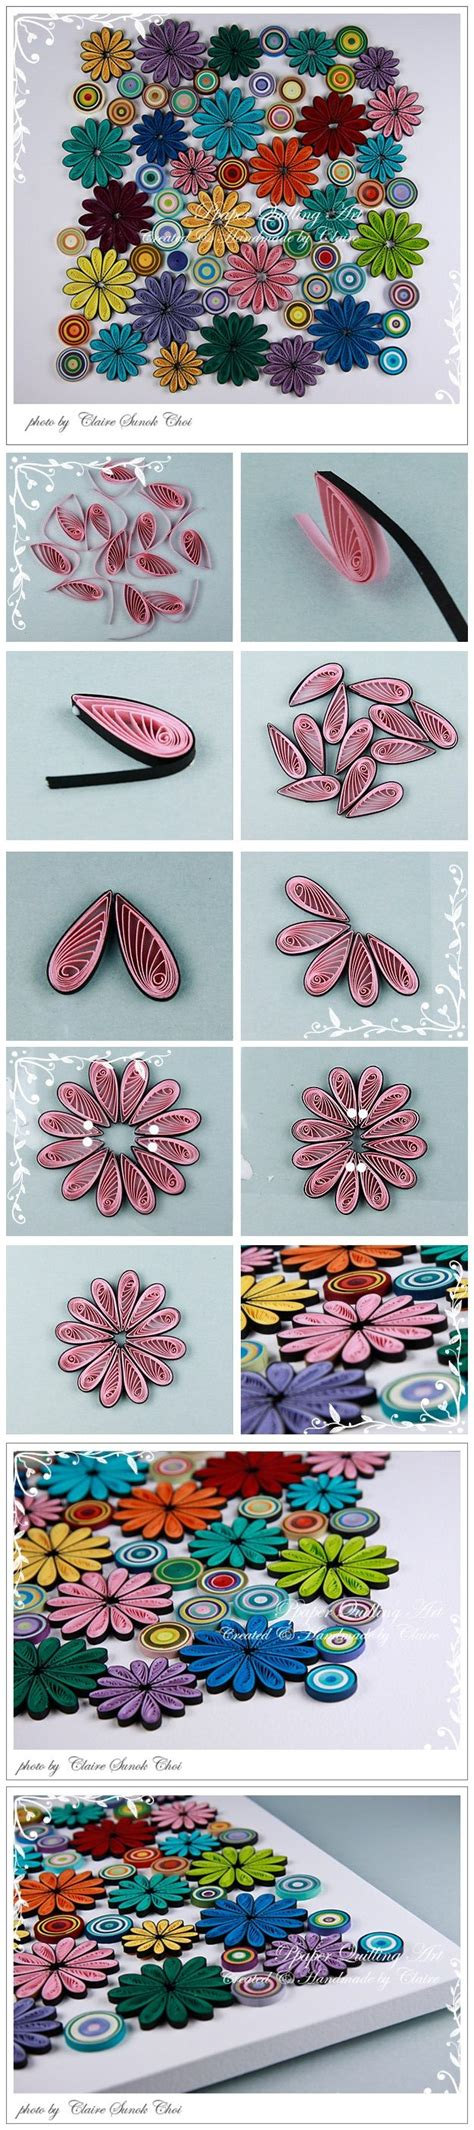 how to do and craft with paper diy projects paper wall for your rooms pretty designs